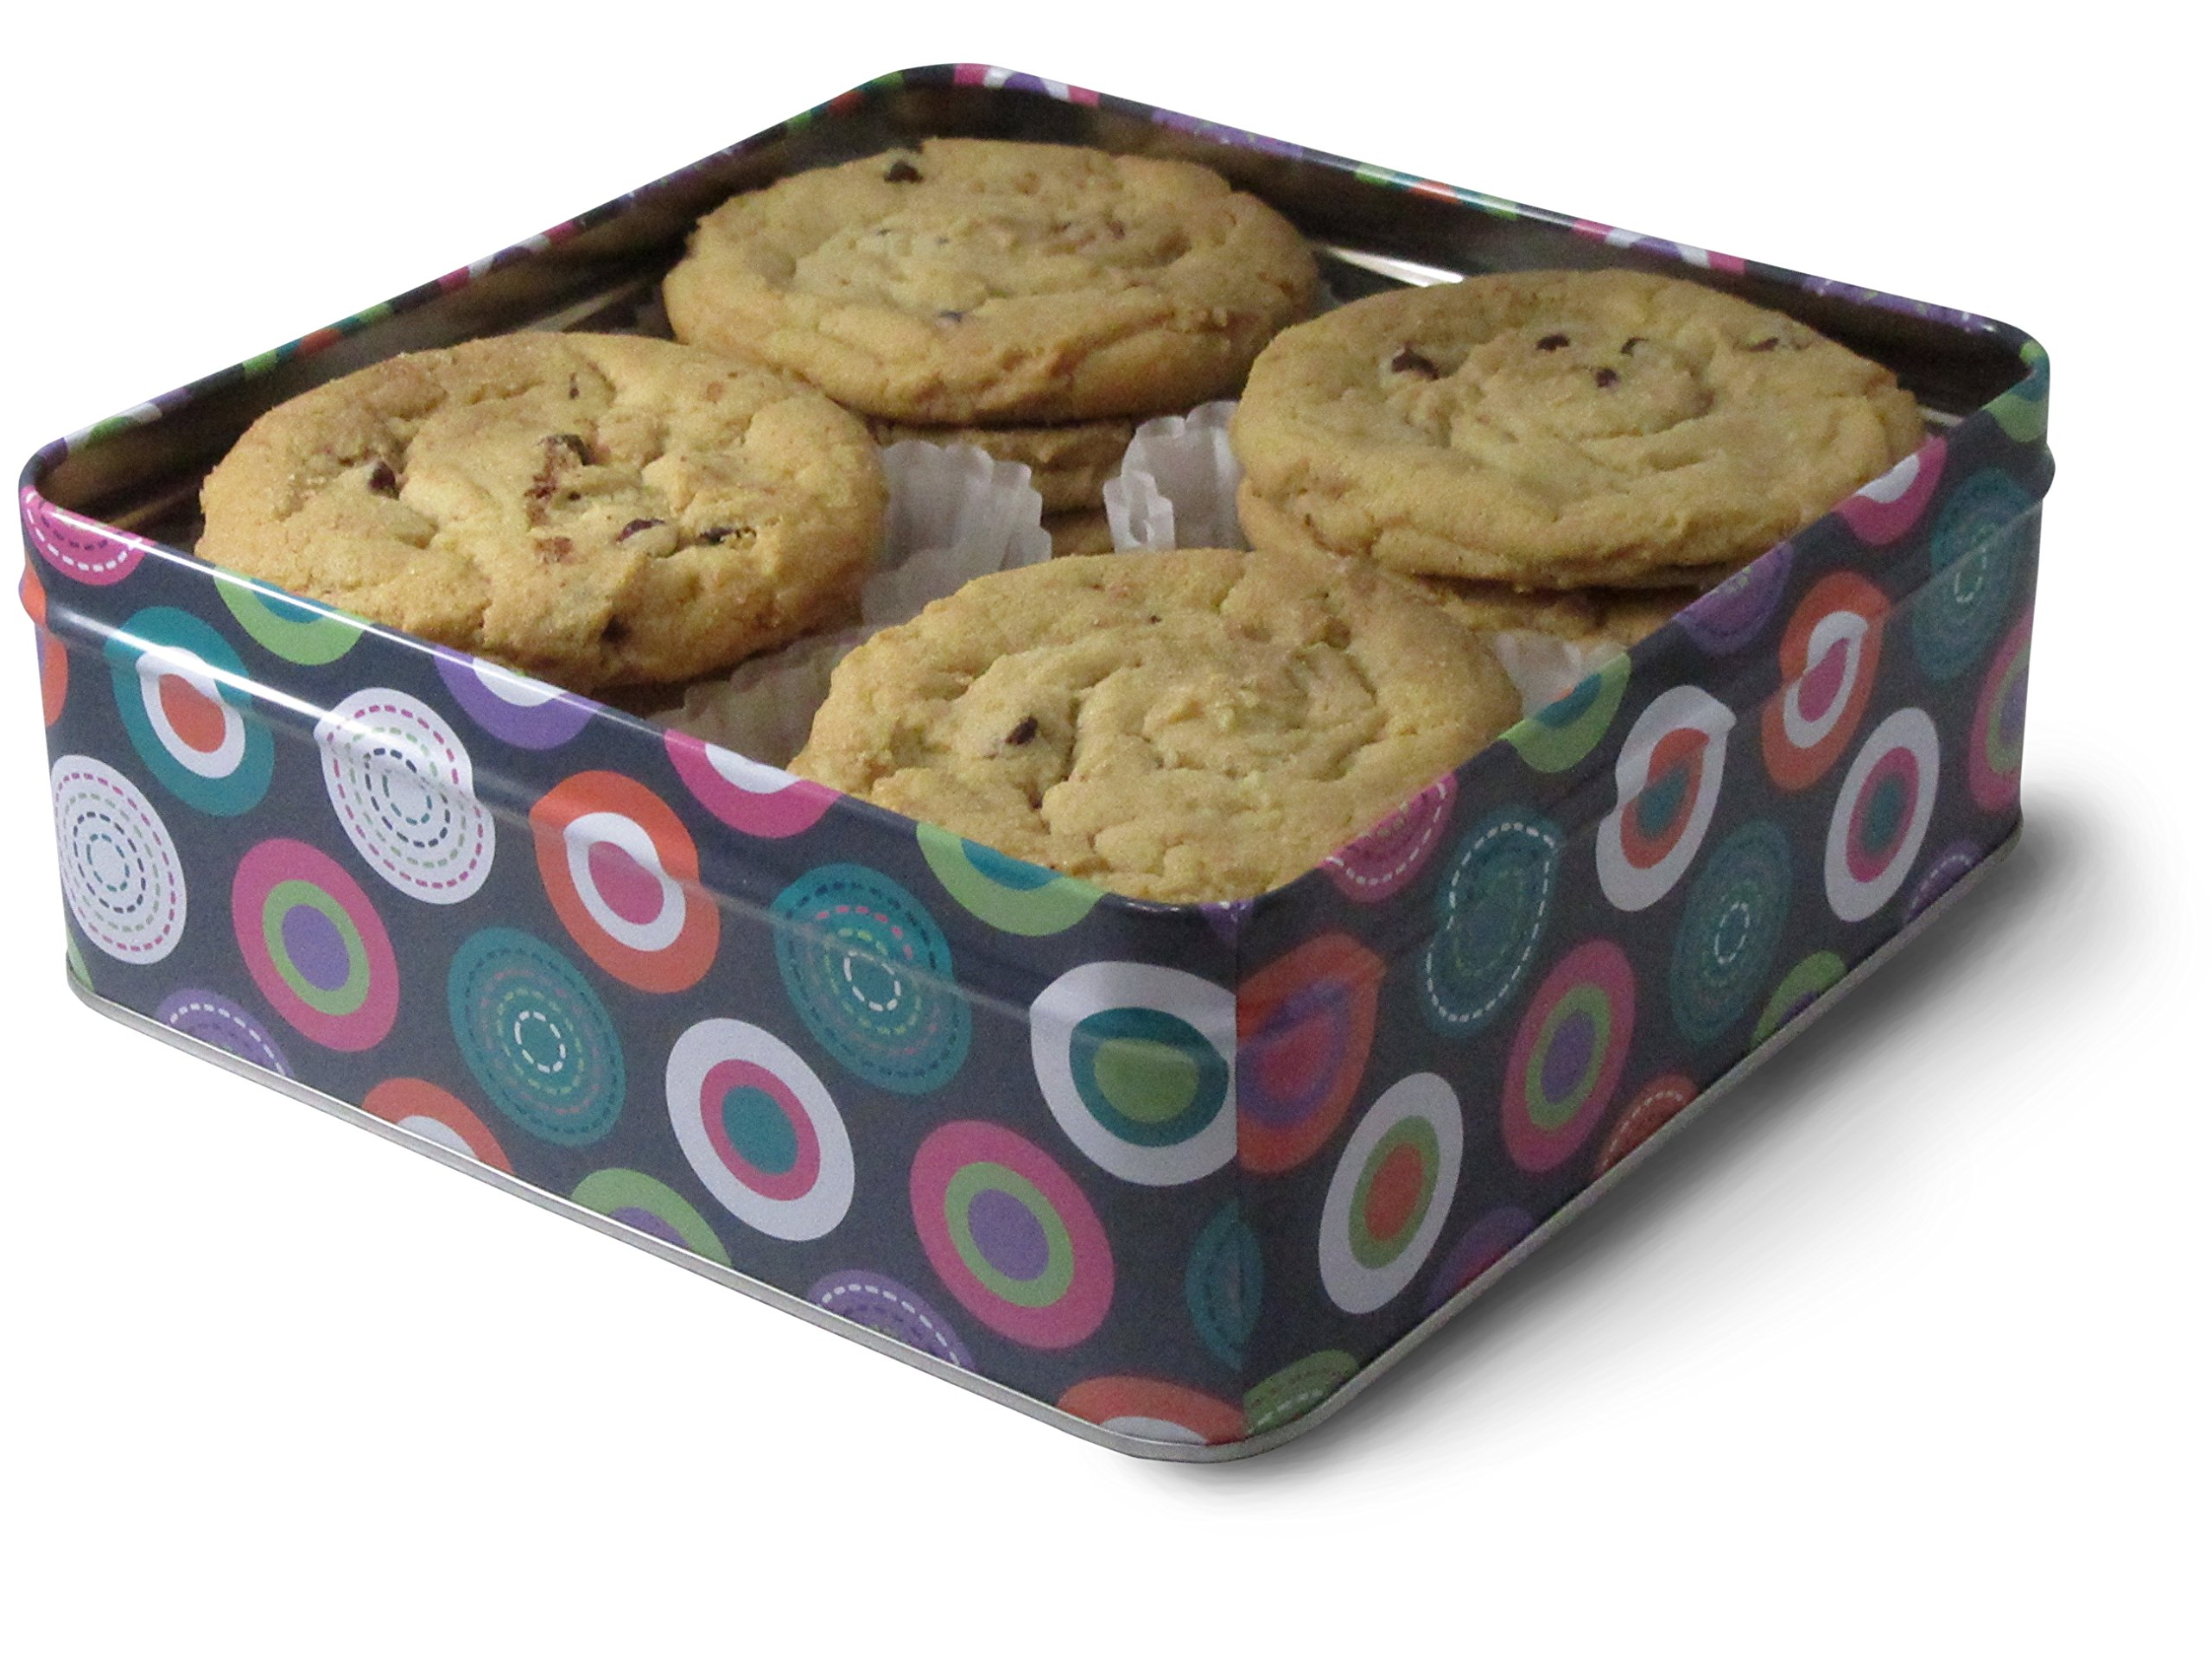 Fresh Baked Chocolate Chip Cookie Tins, Comes in Multiple Sizes | Gimmee Jimmy's Authentic Cookies (1 Pound) by Gimmee Jimmy's Cookies (Image #2)